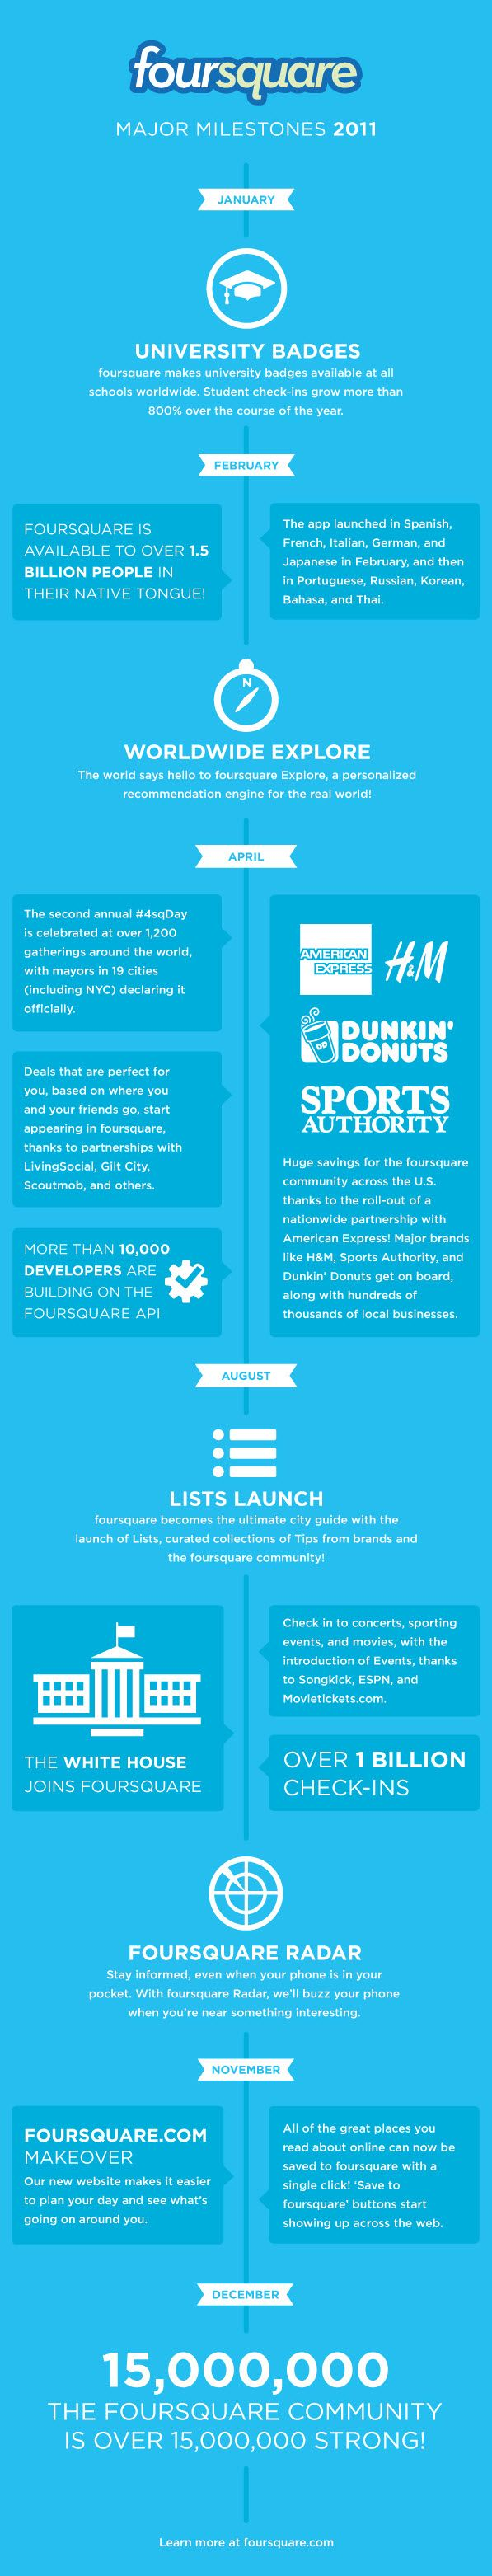 Is Foursquare a Waste of Time? -- Article by Jeff Bullas; #Infographic via #Foursquare.